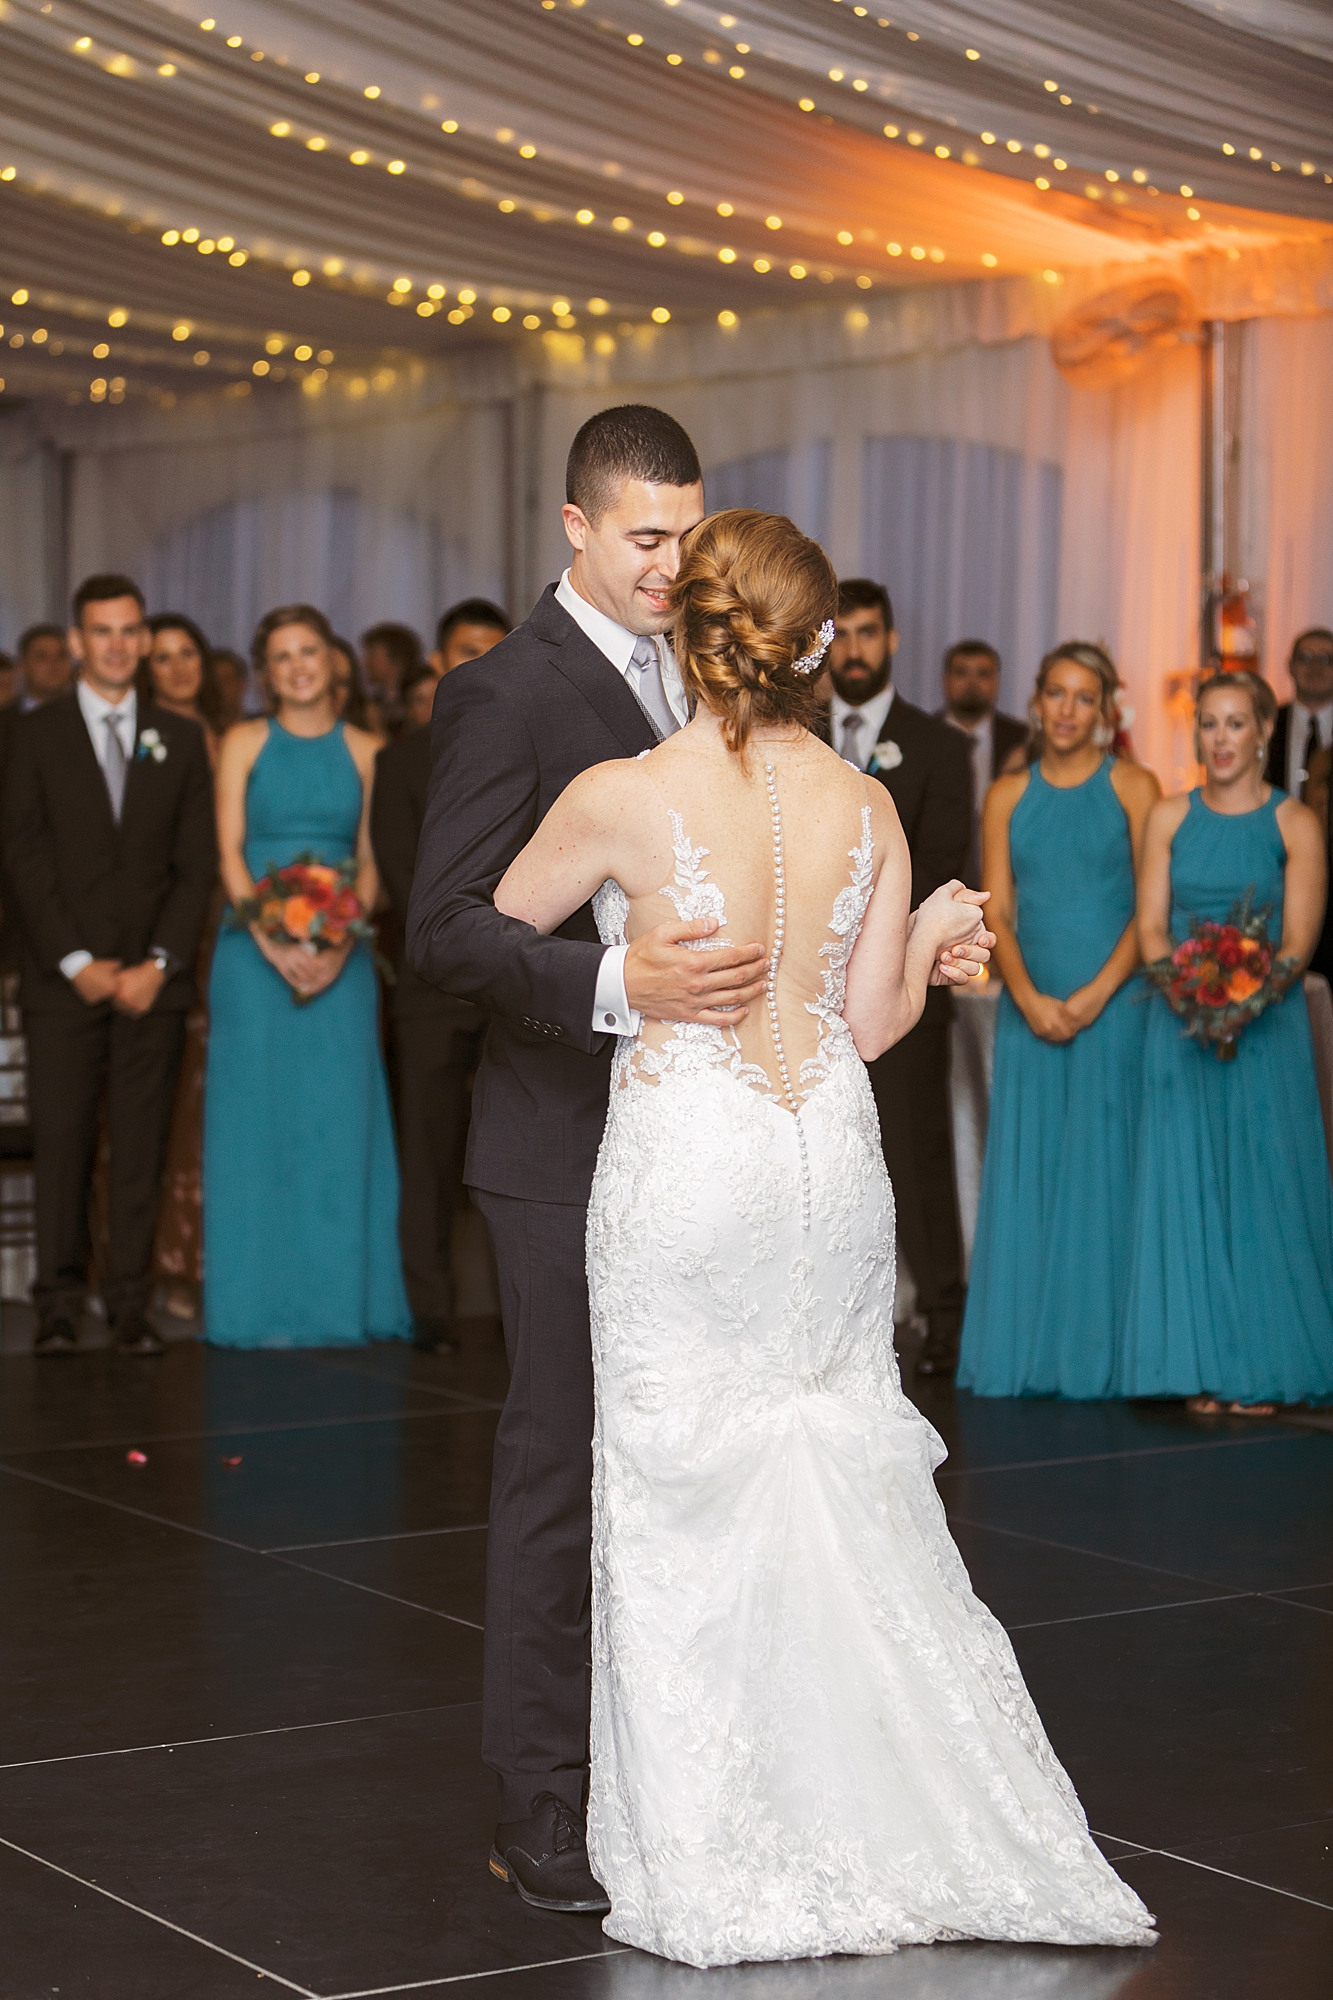 Genuine and Natural Philadelphia Wedding Photography by Magdalena Studios 0050